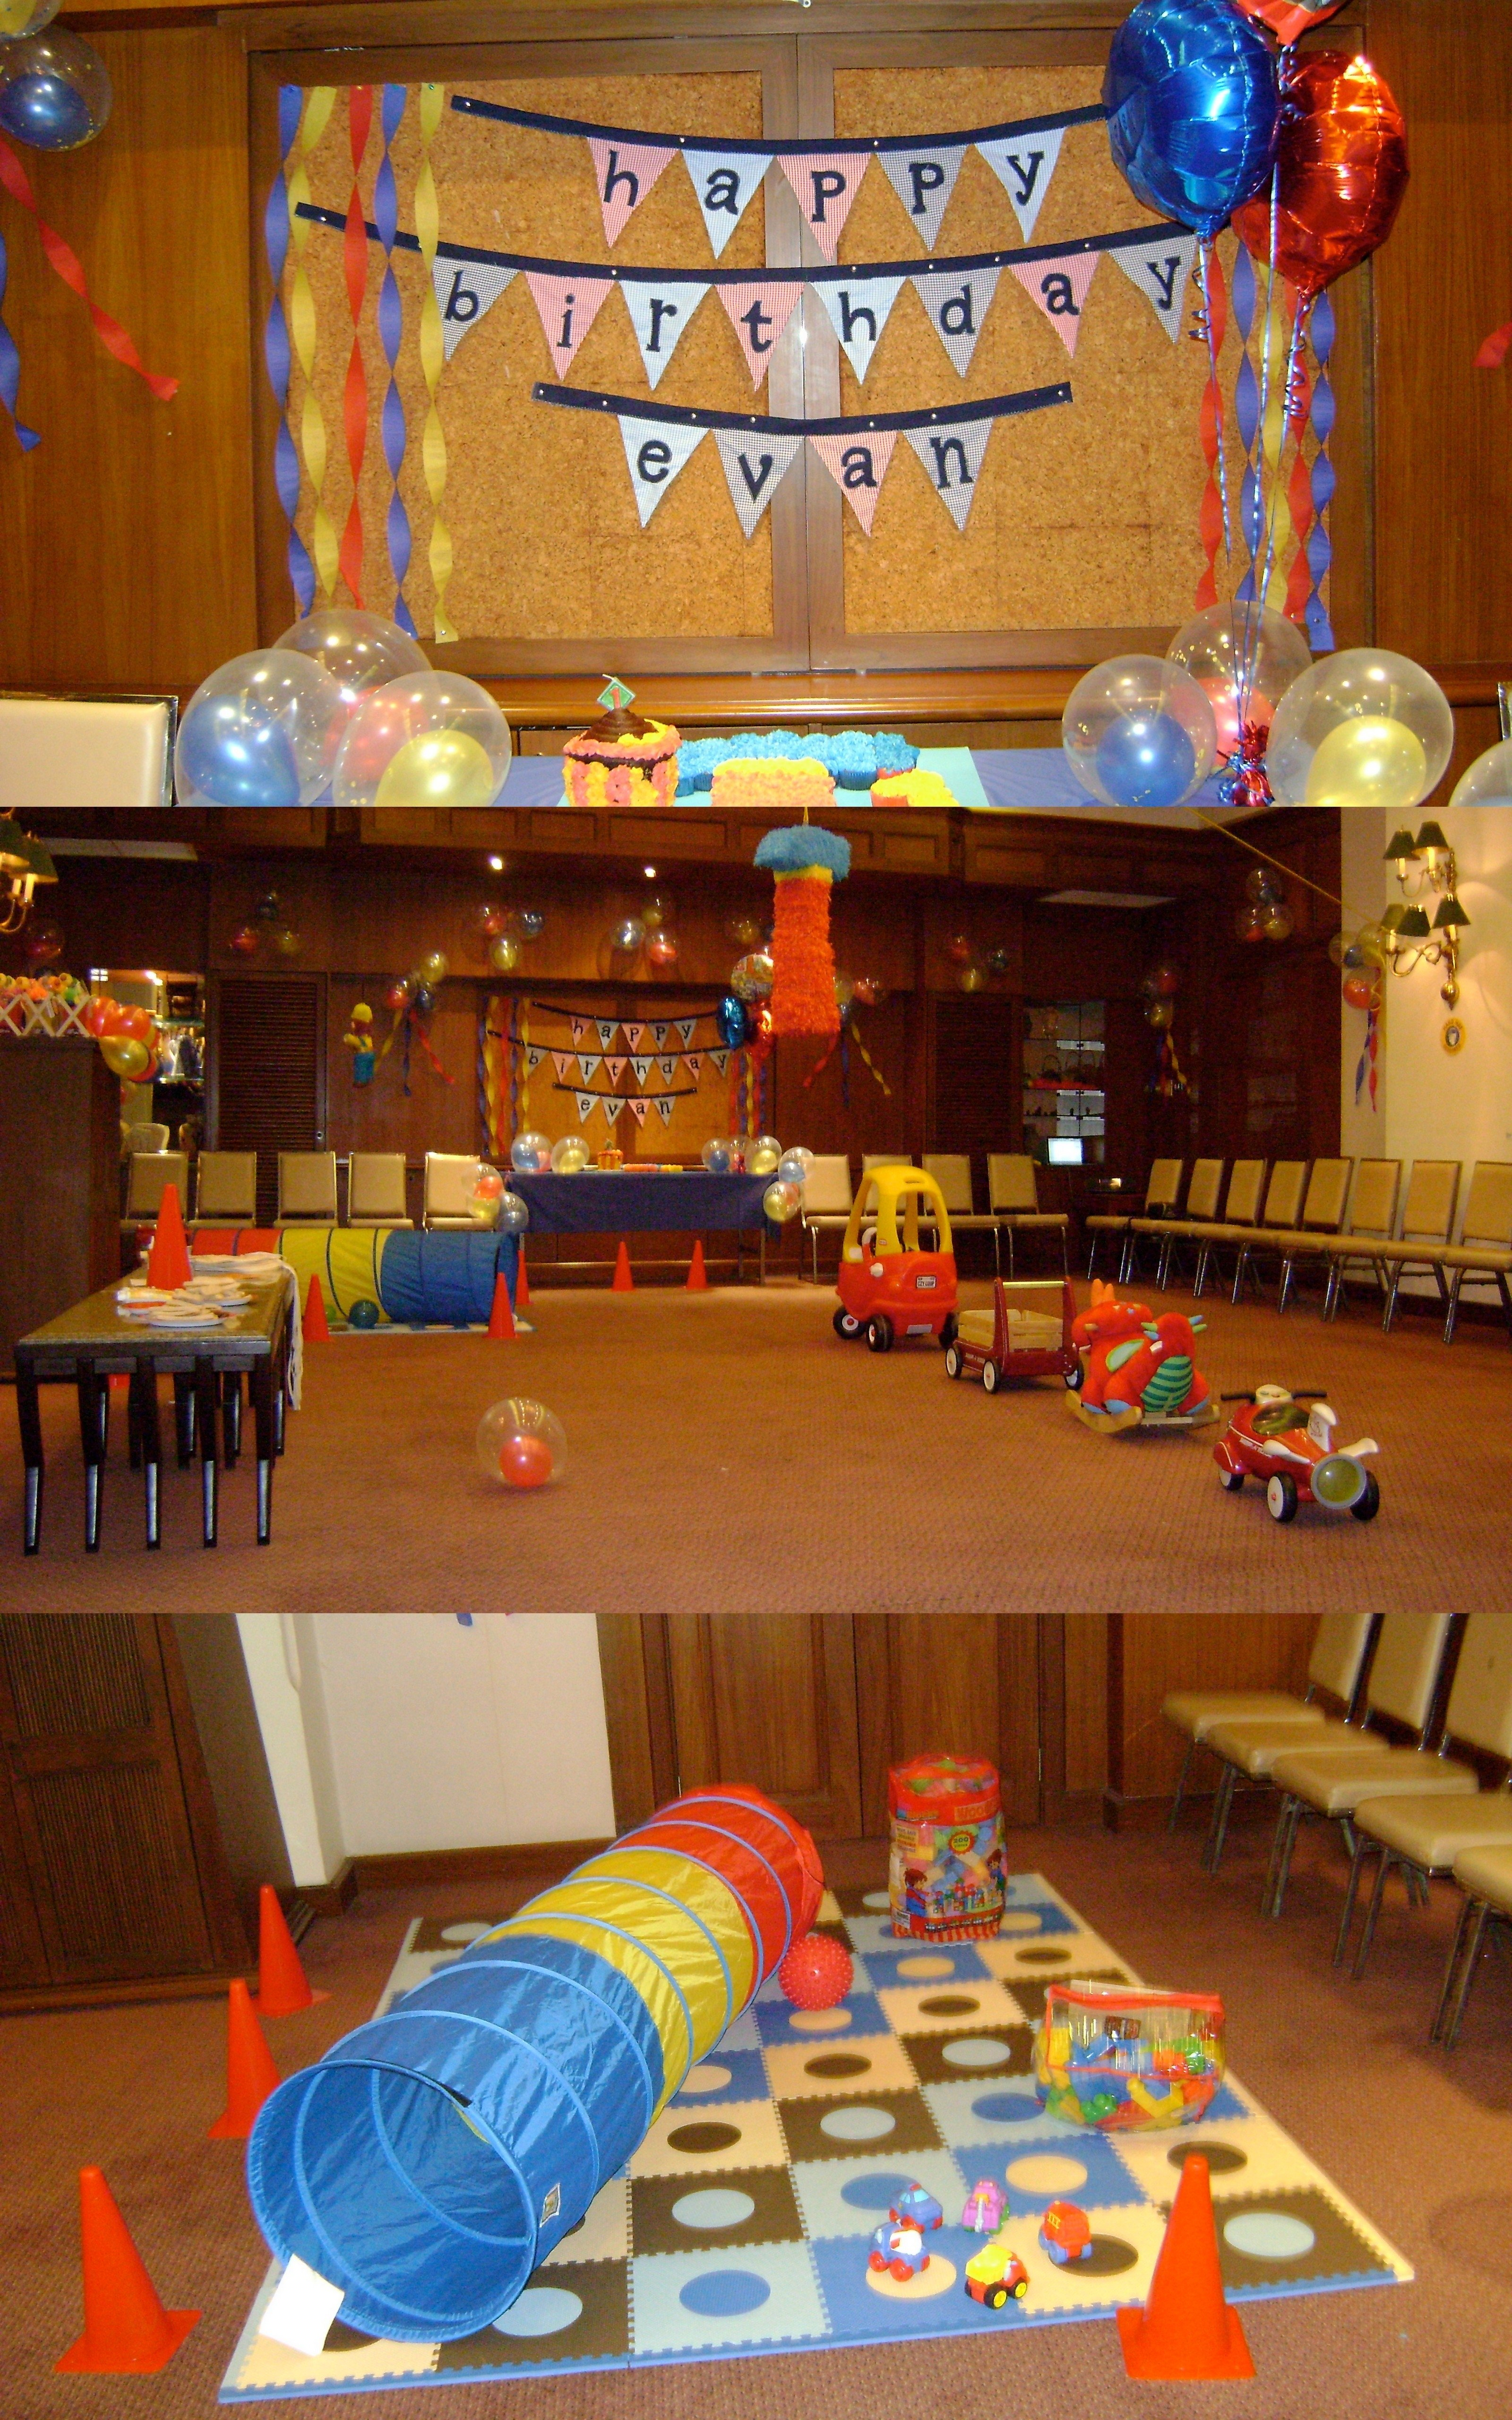 10 Wonderful 1St Birthday Party Game Ideas first birthday party game ideas wedding 2020